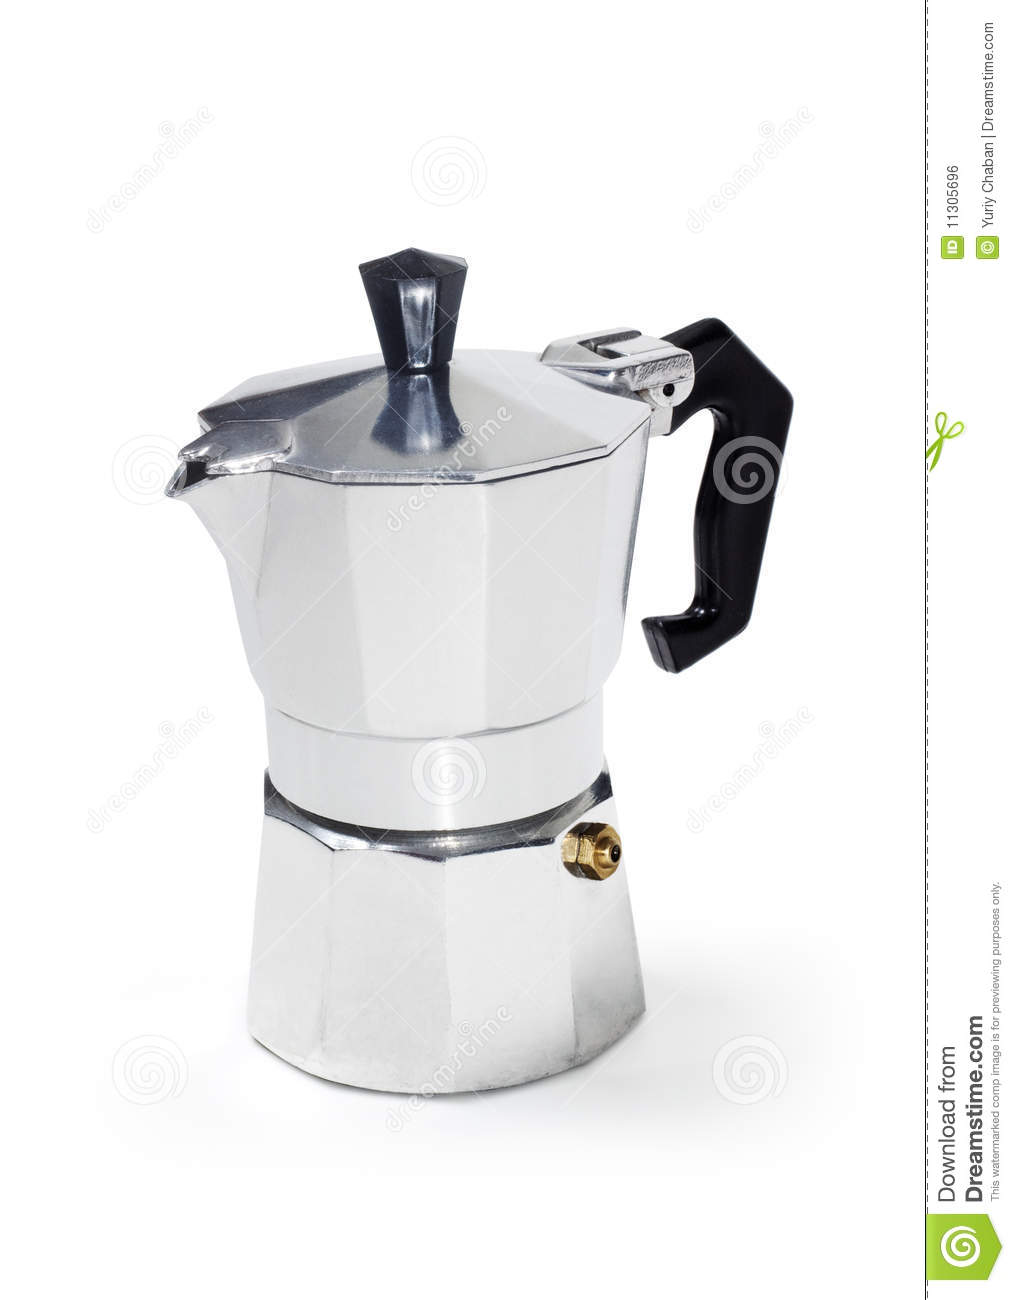 Map Italian Coffee Maker : Classic Italian Coffee Maker Royalty Free Stock Image - Image: 11305696